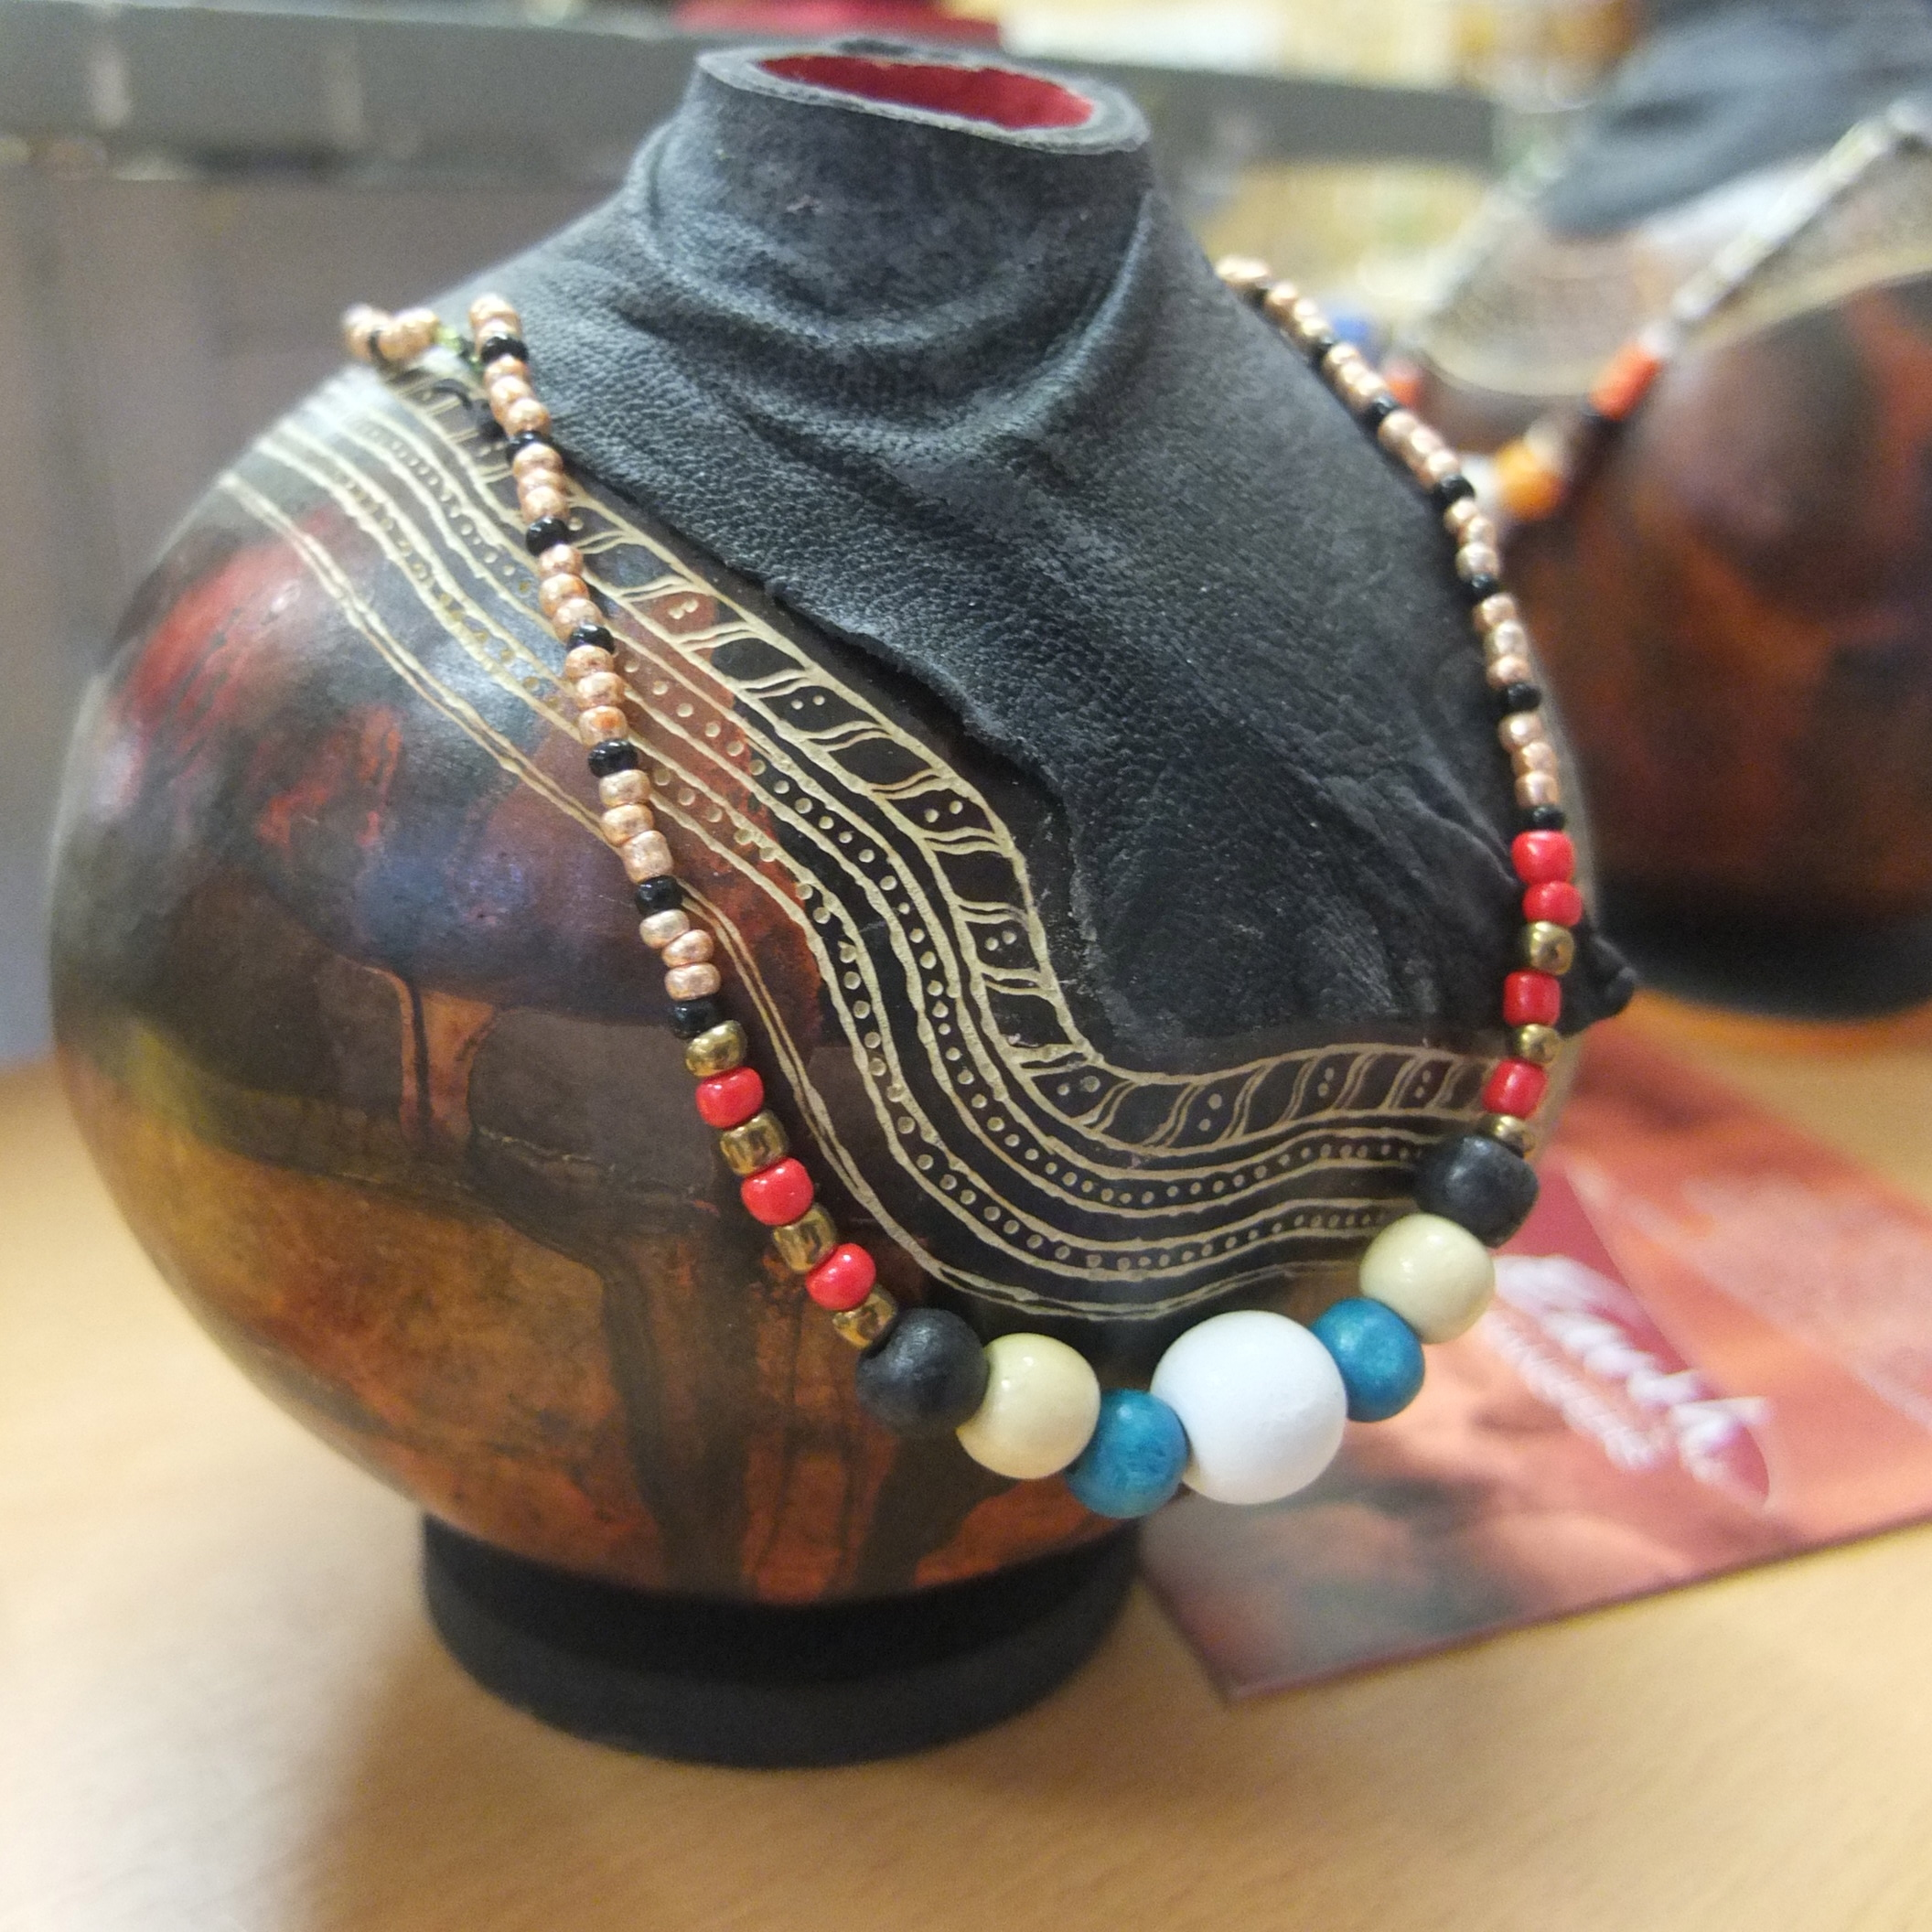 Namibian made necklaces